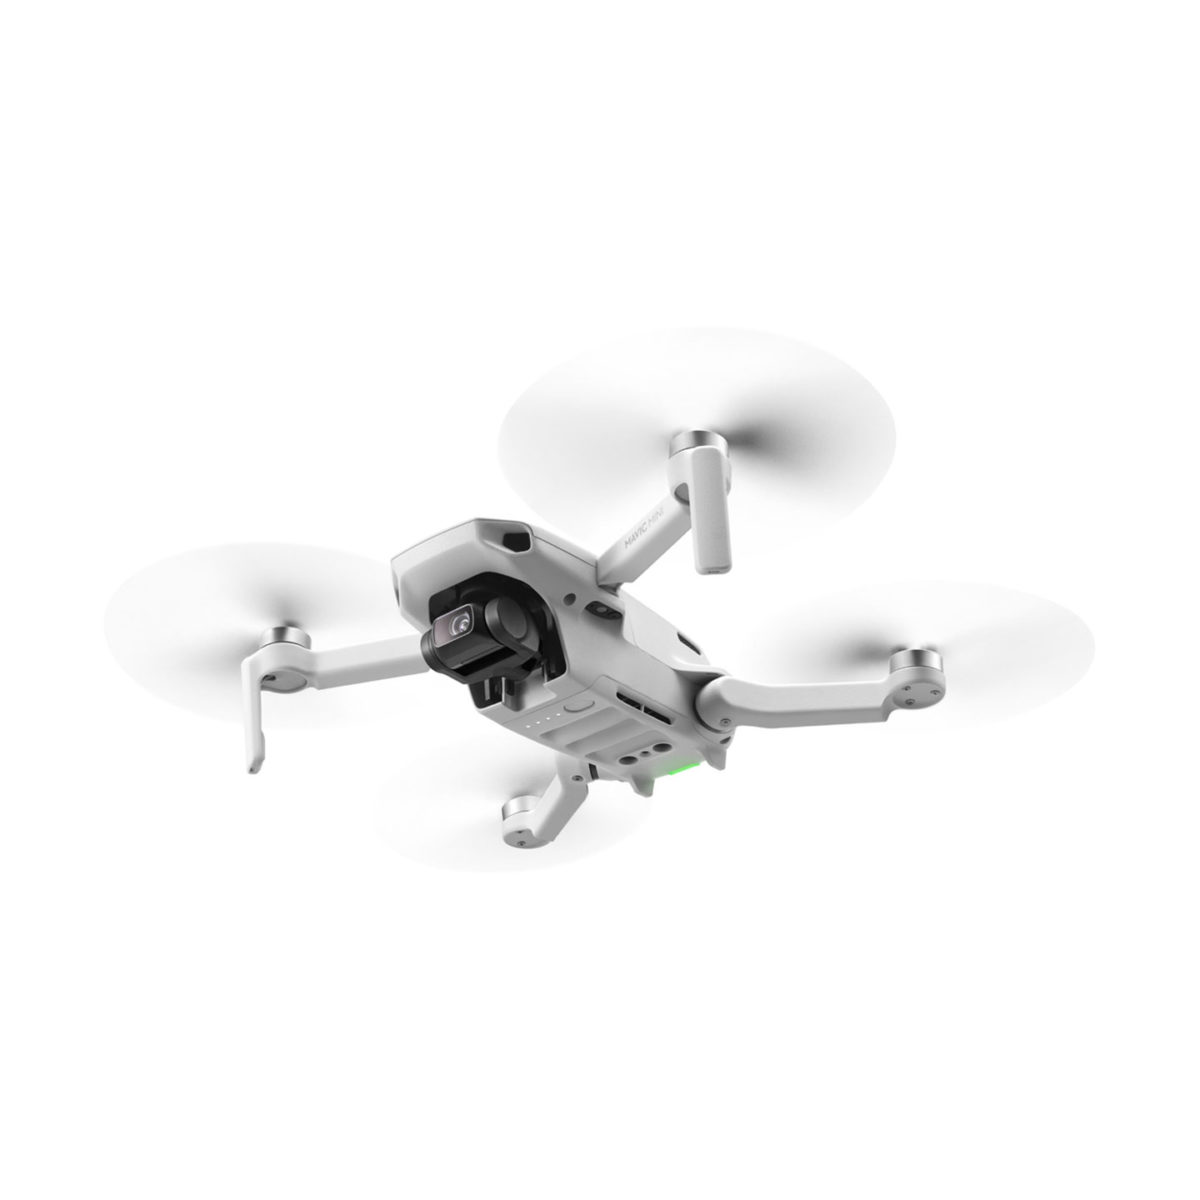 dji_mavic_mini_single_07